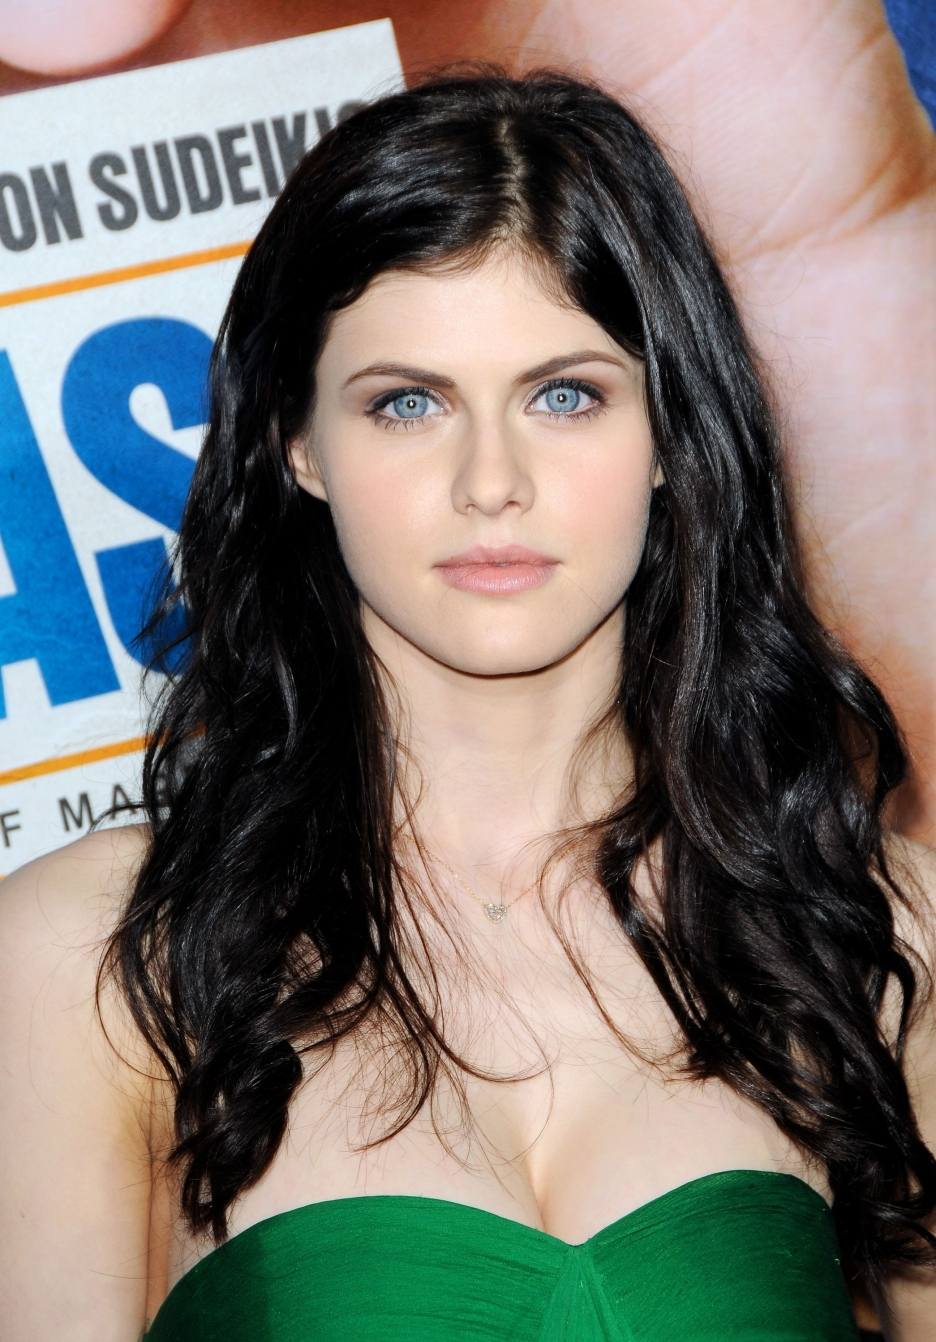 Alexandra daddario sexy and hot photo